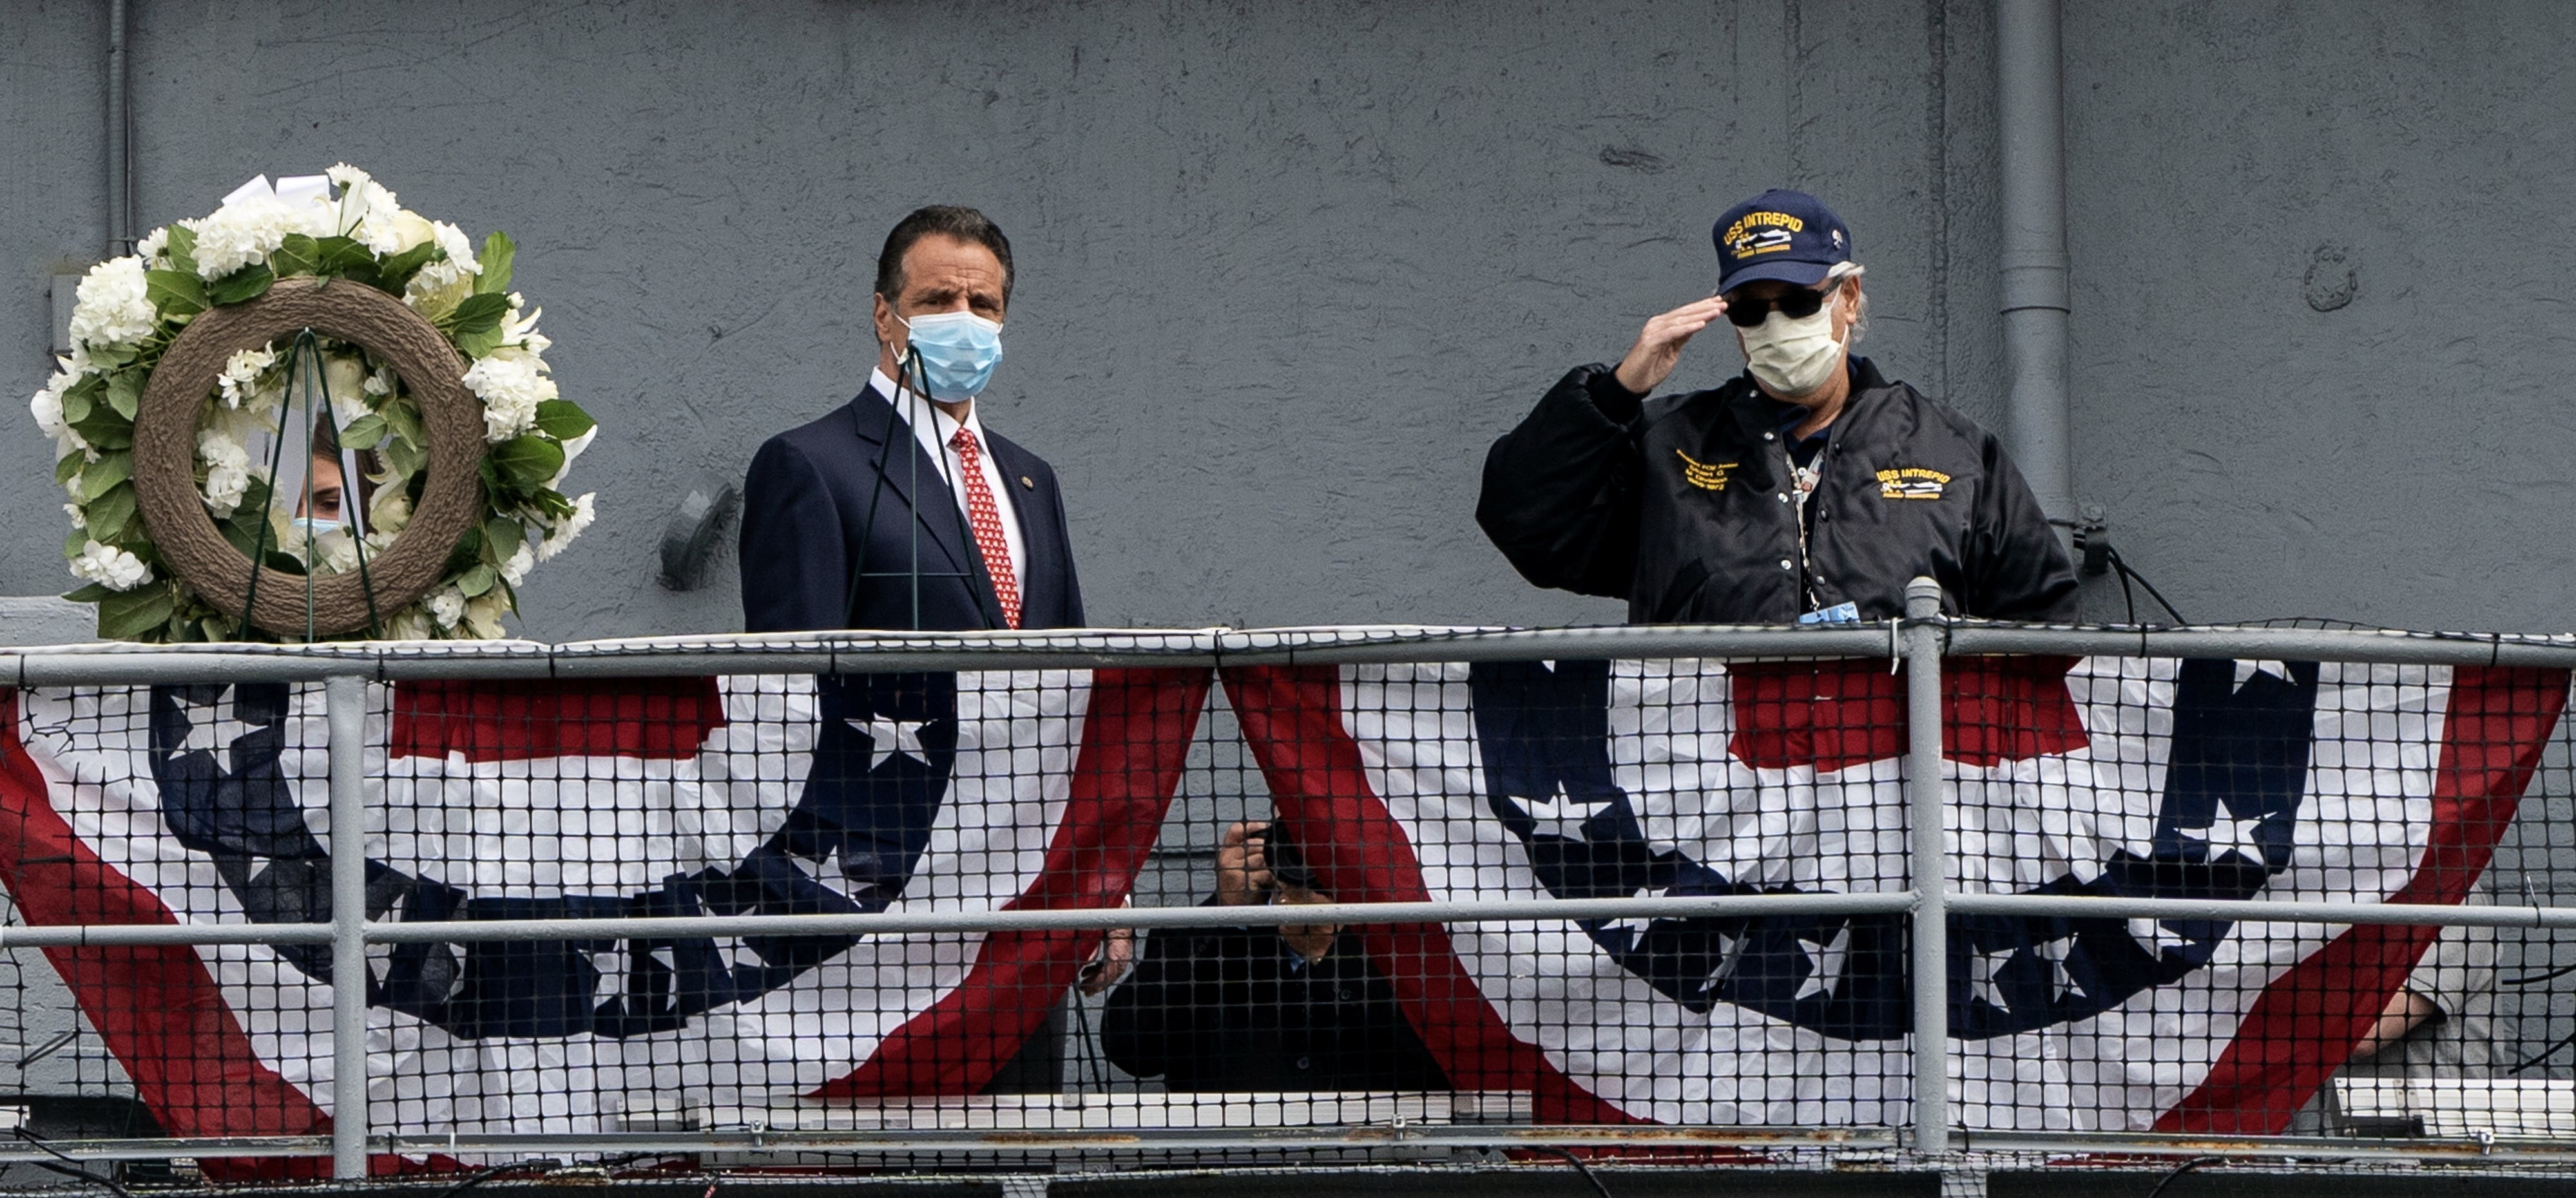 President of the Intrepid Former Crew members Association Stuart Gelband (r) wearing a protective mask salutes next to New York Governor Andrew Cuomo during the Memorial day ceremony at the Intrepid Sea, Air & Space Museum following the outbreak of the coronavirus disease (COVID-19) in New York, U.S., May 25, 2020.. REUTERS/Jeenah Moon